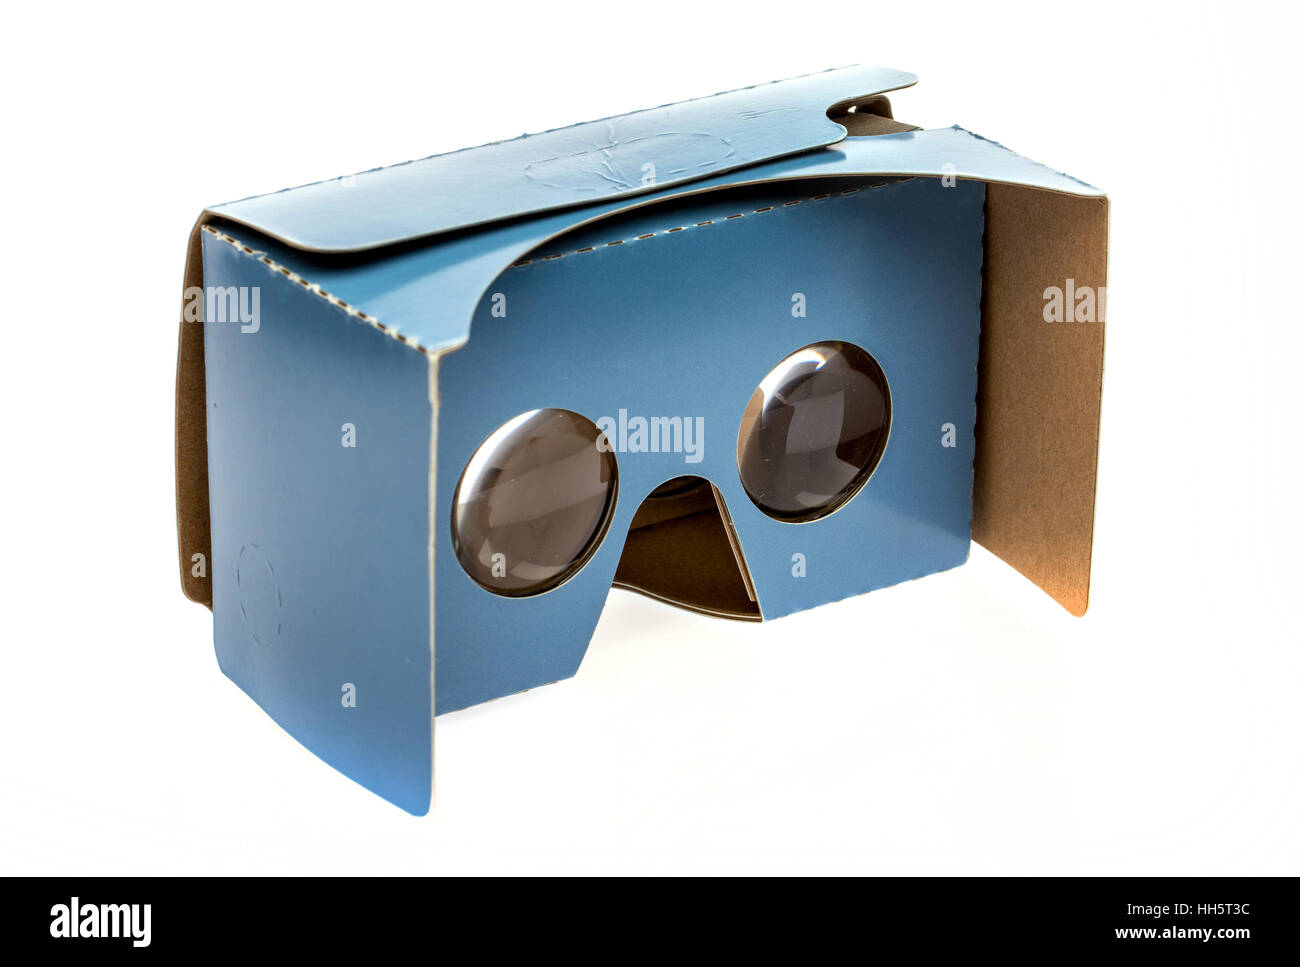 Cardboard VR virtual reality headset - Stock Image